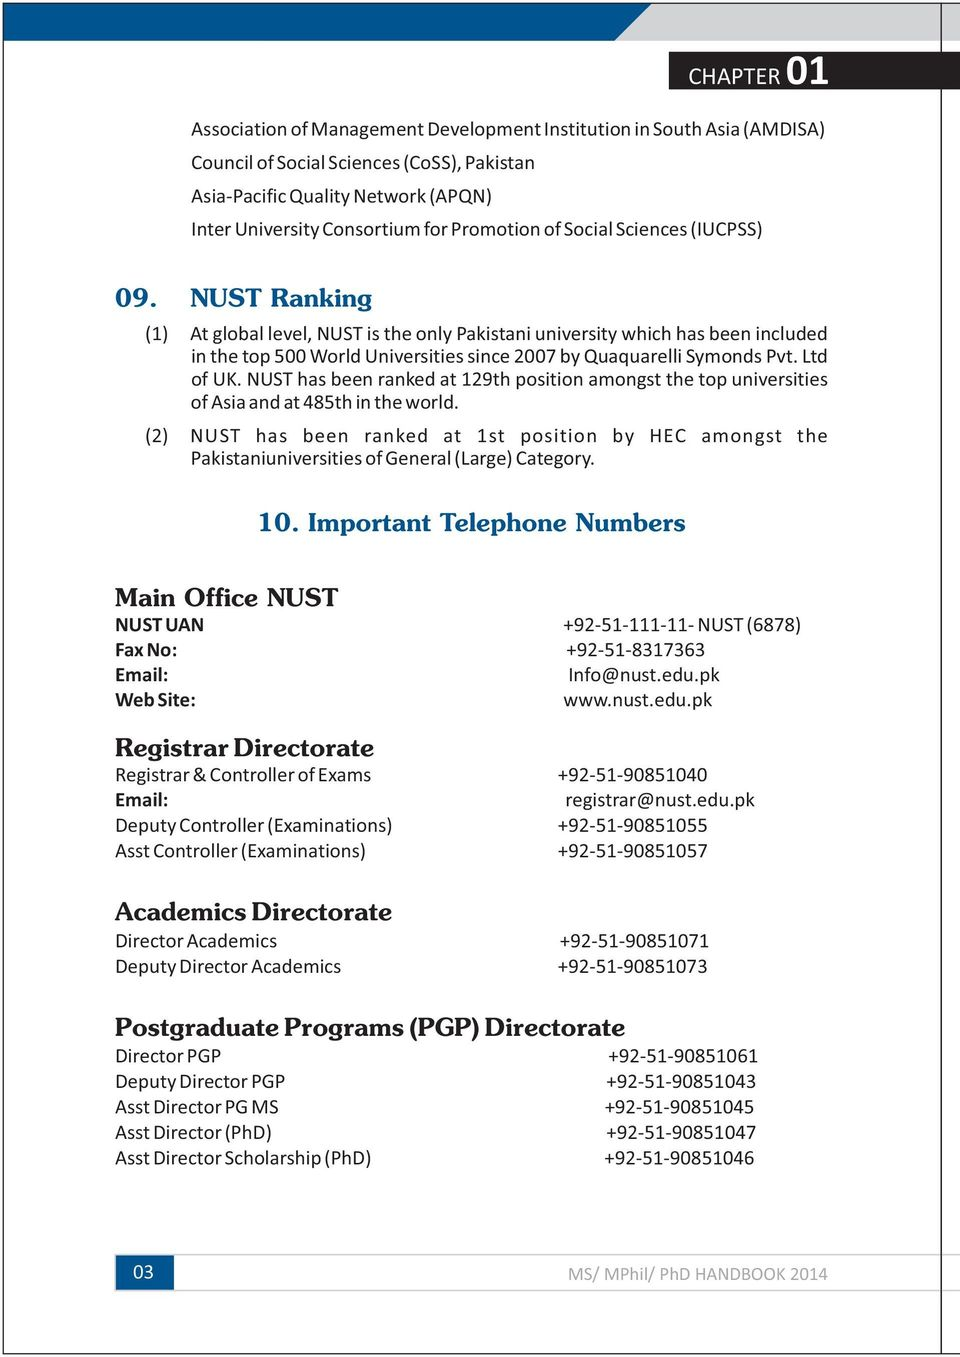 NATIONAL UNIVERSITY OF SCIENCES & TECHNOLOGY  MS/ MPhil/ PhD